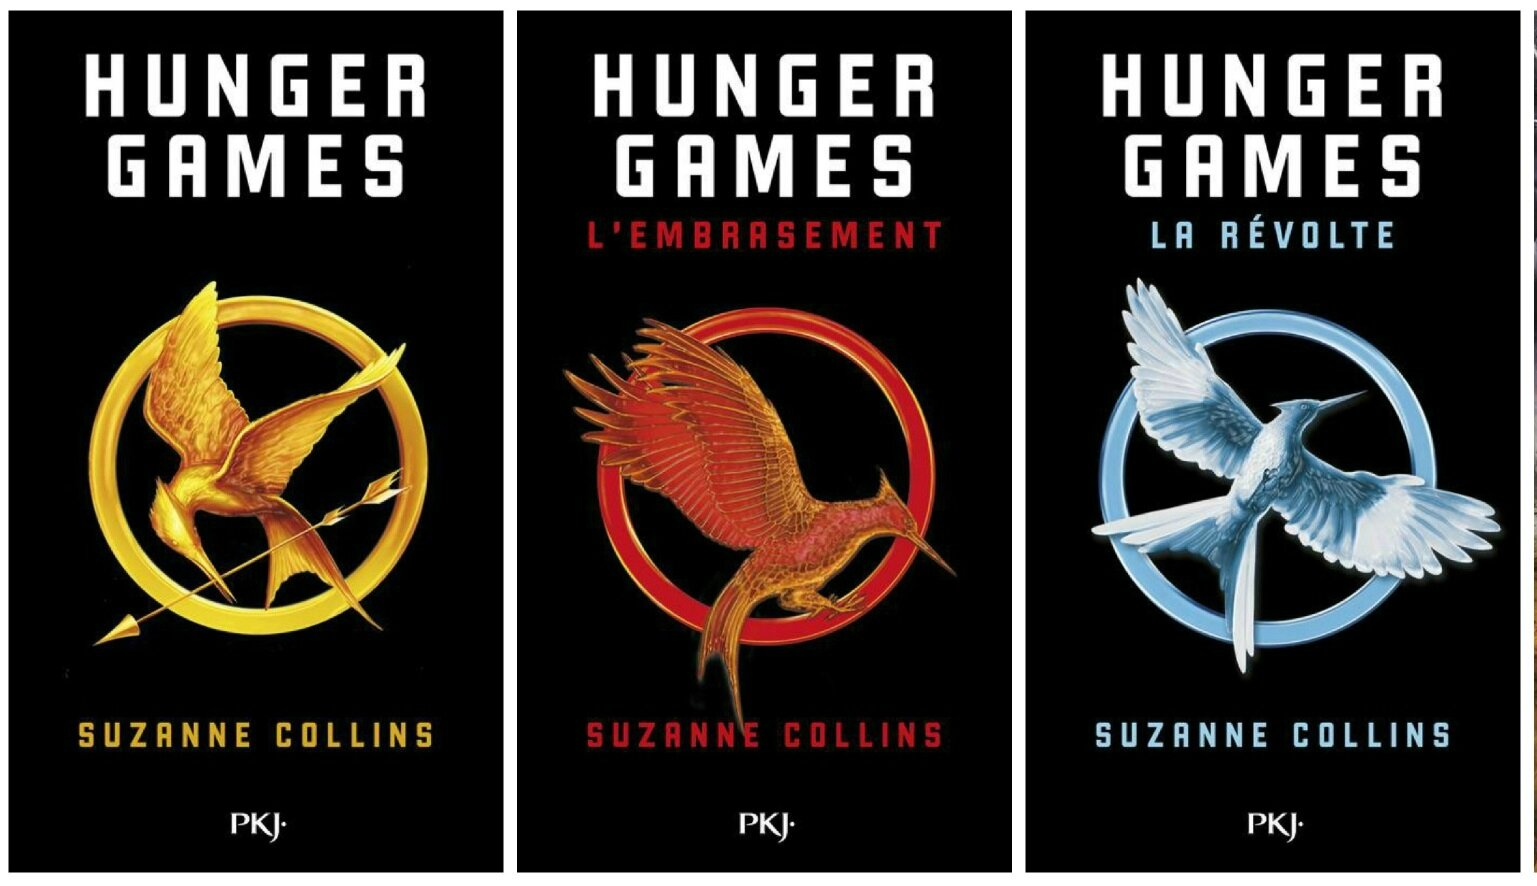 Hunger Games de Suzanne Collins : ISSN 2607-0006 - 1001 ...